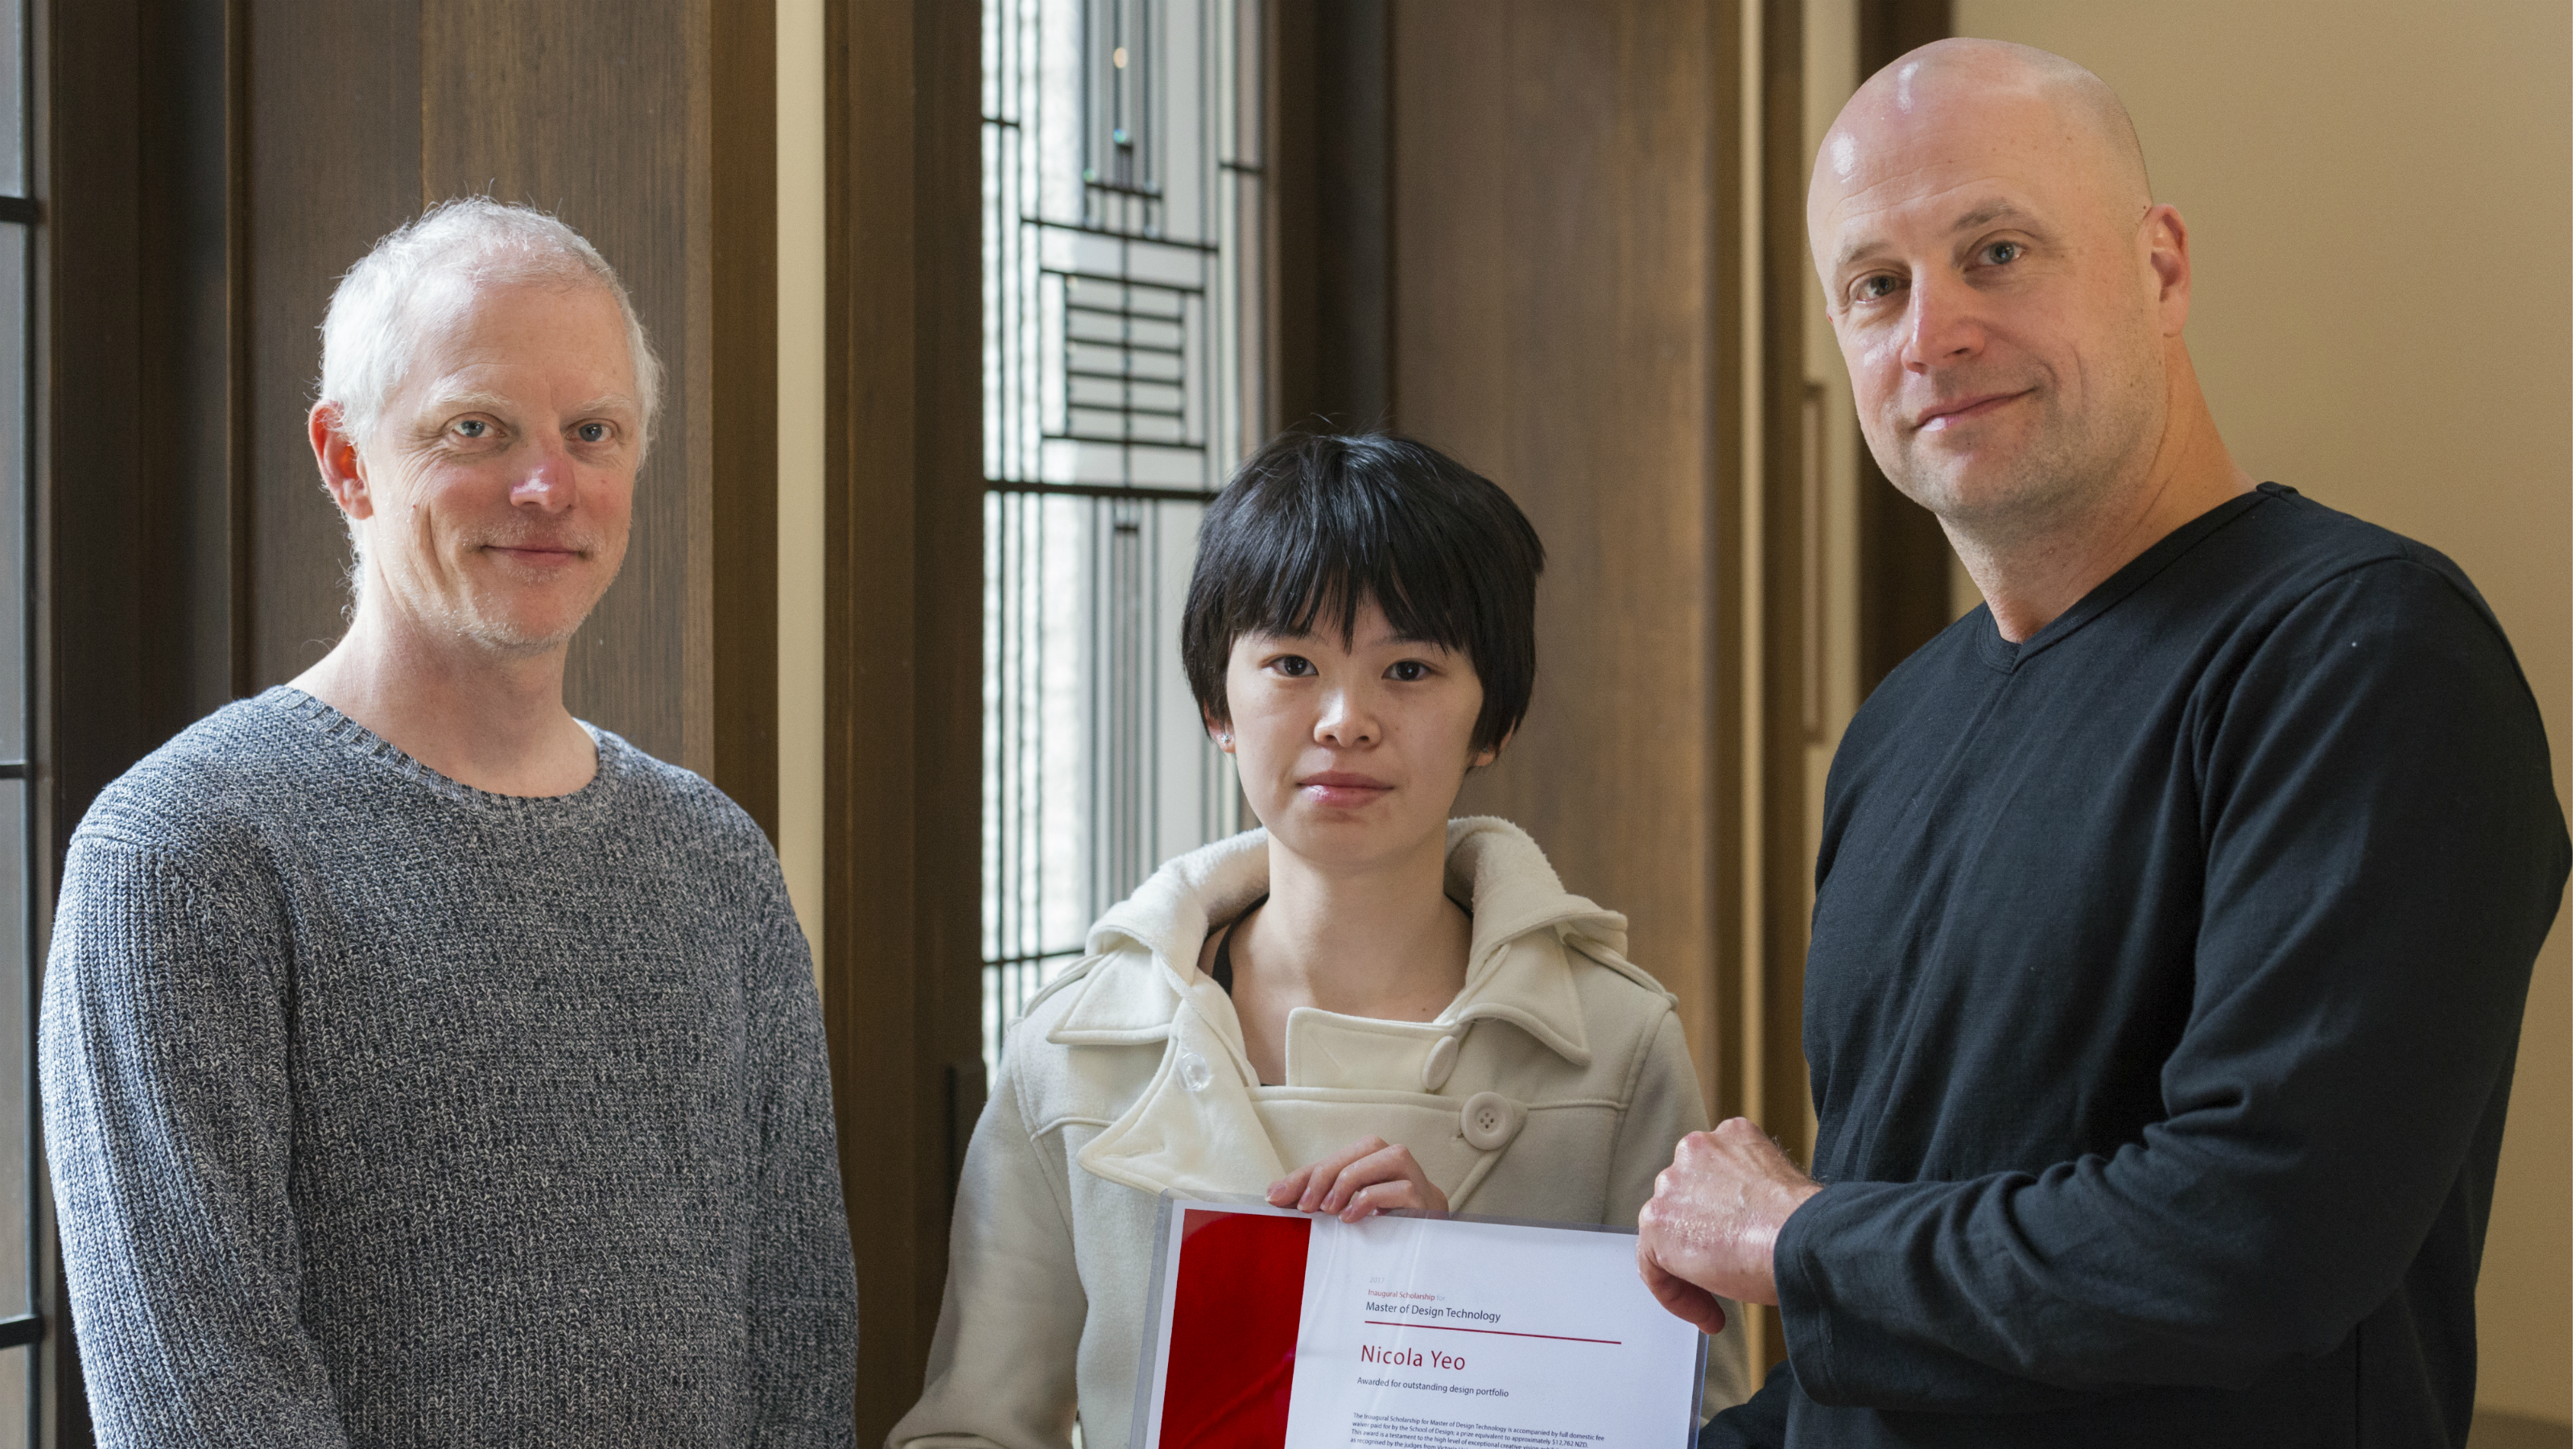 Doug Easterley handing Nicola Yeo a certificate for her scholarship, Kevin Romond stands to the left.